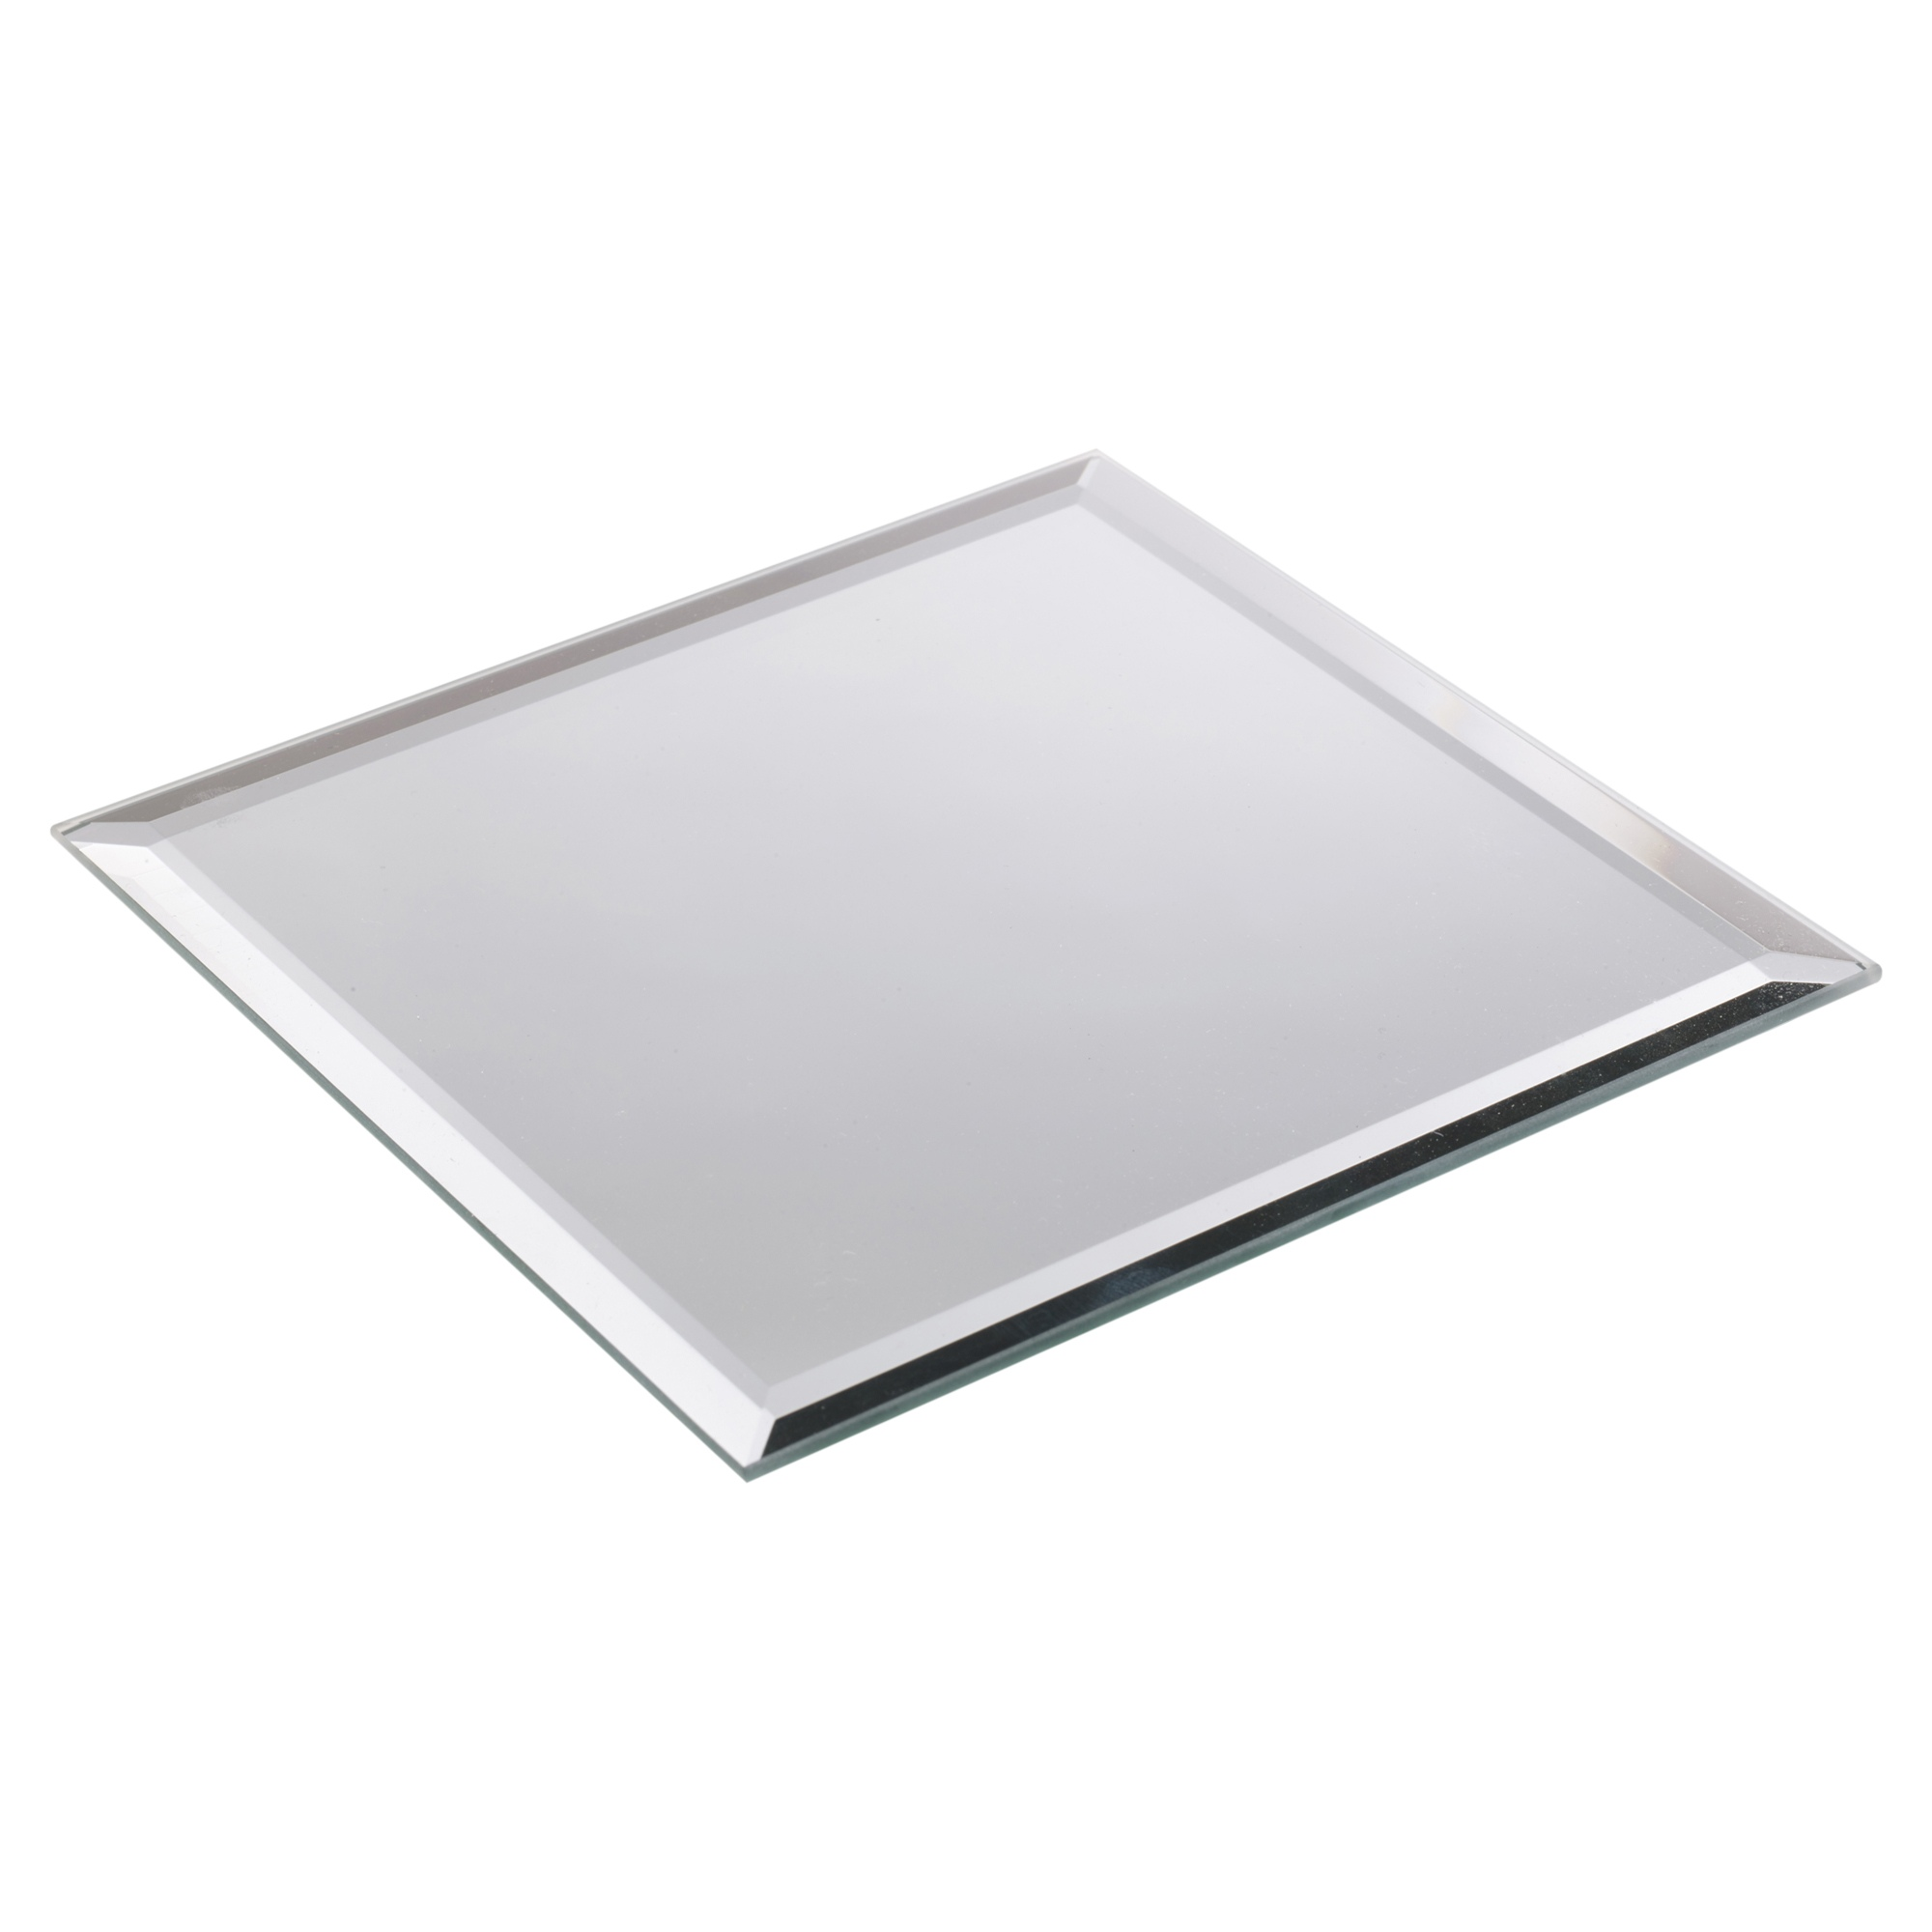 From £1.49  sc 1 st  eBay & Round Square Mirror Candle Plate Cake Stand Wedding Table Bevel Edge ...